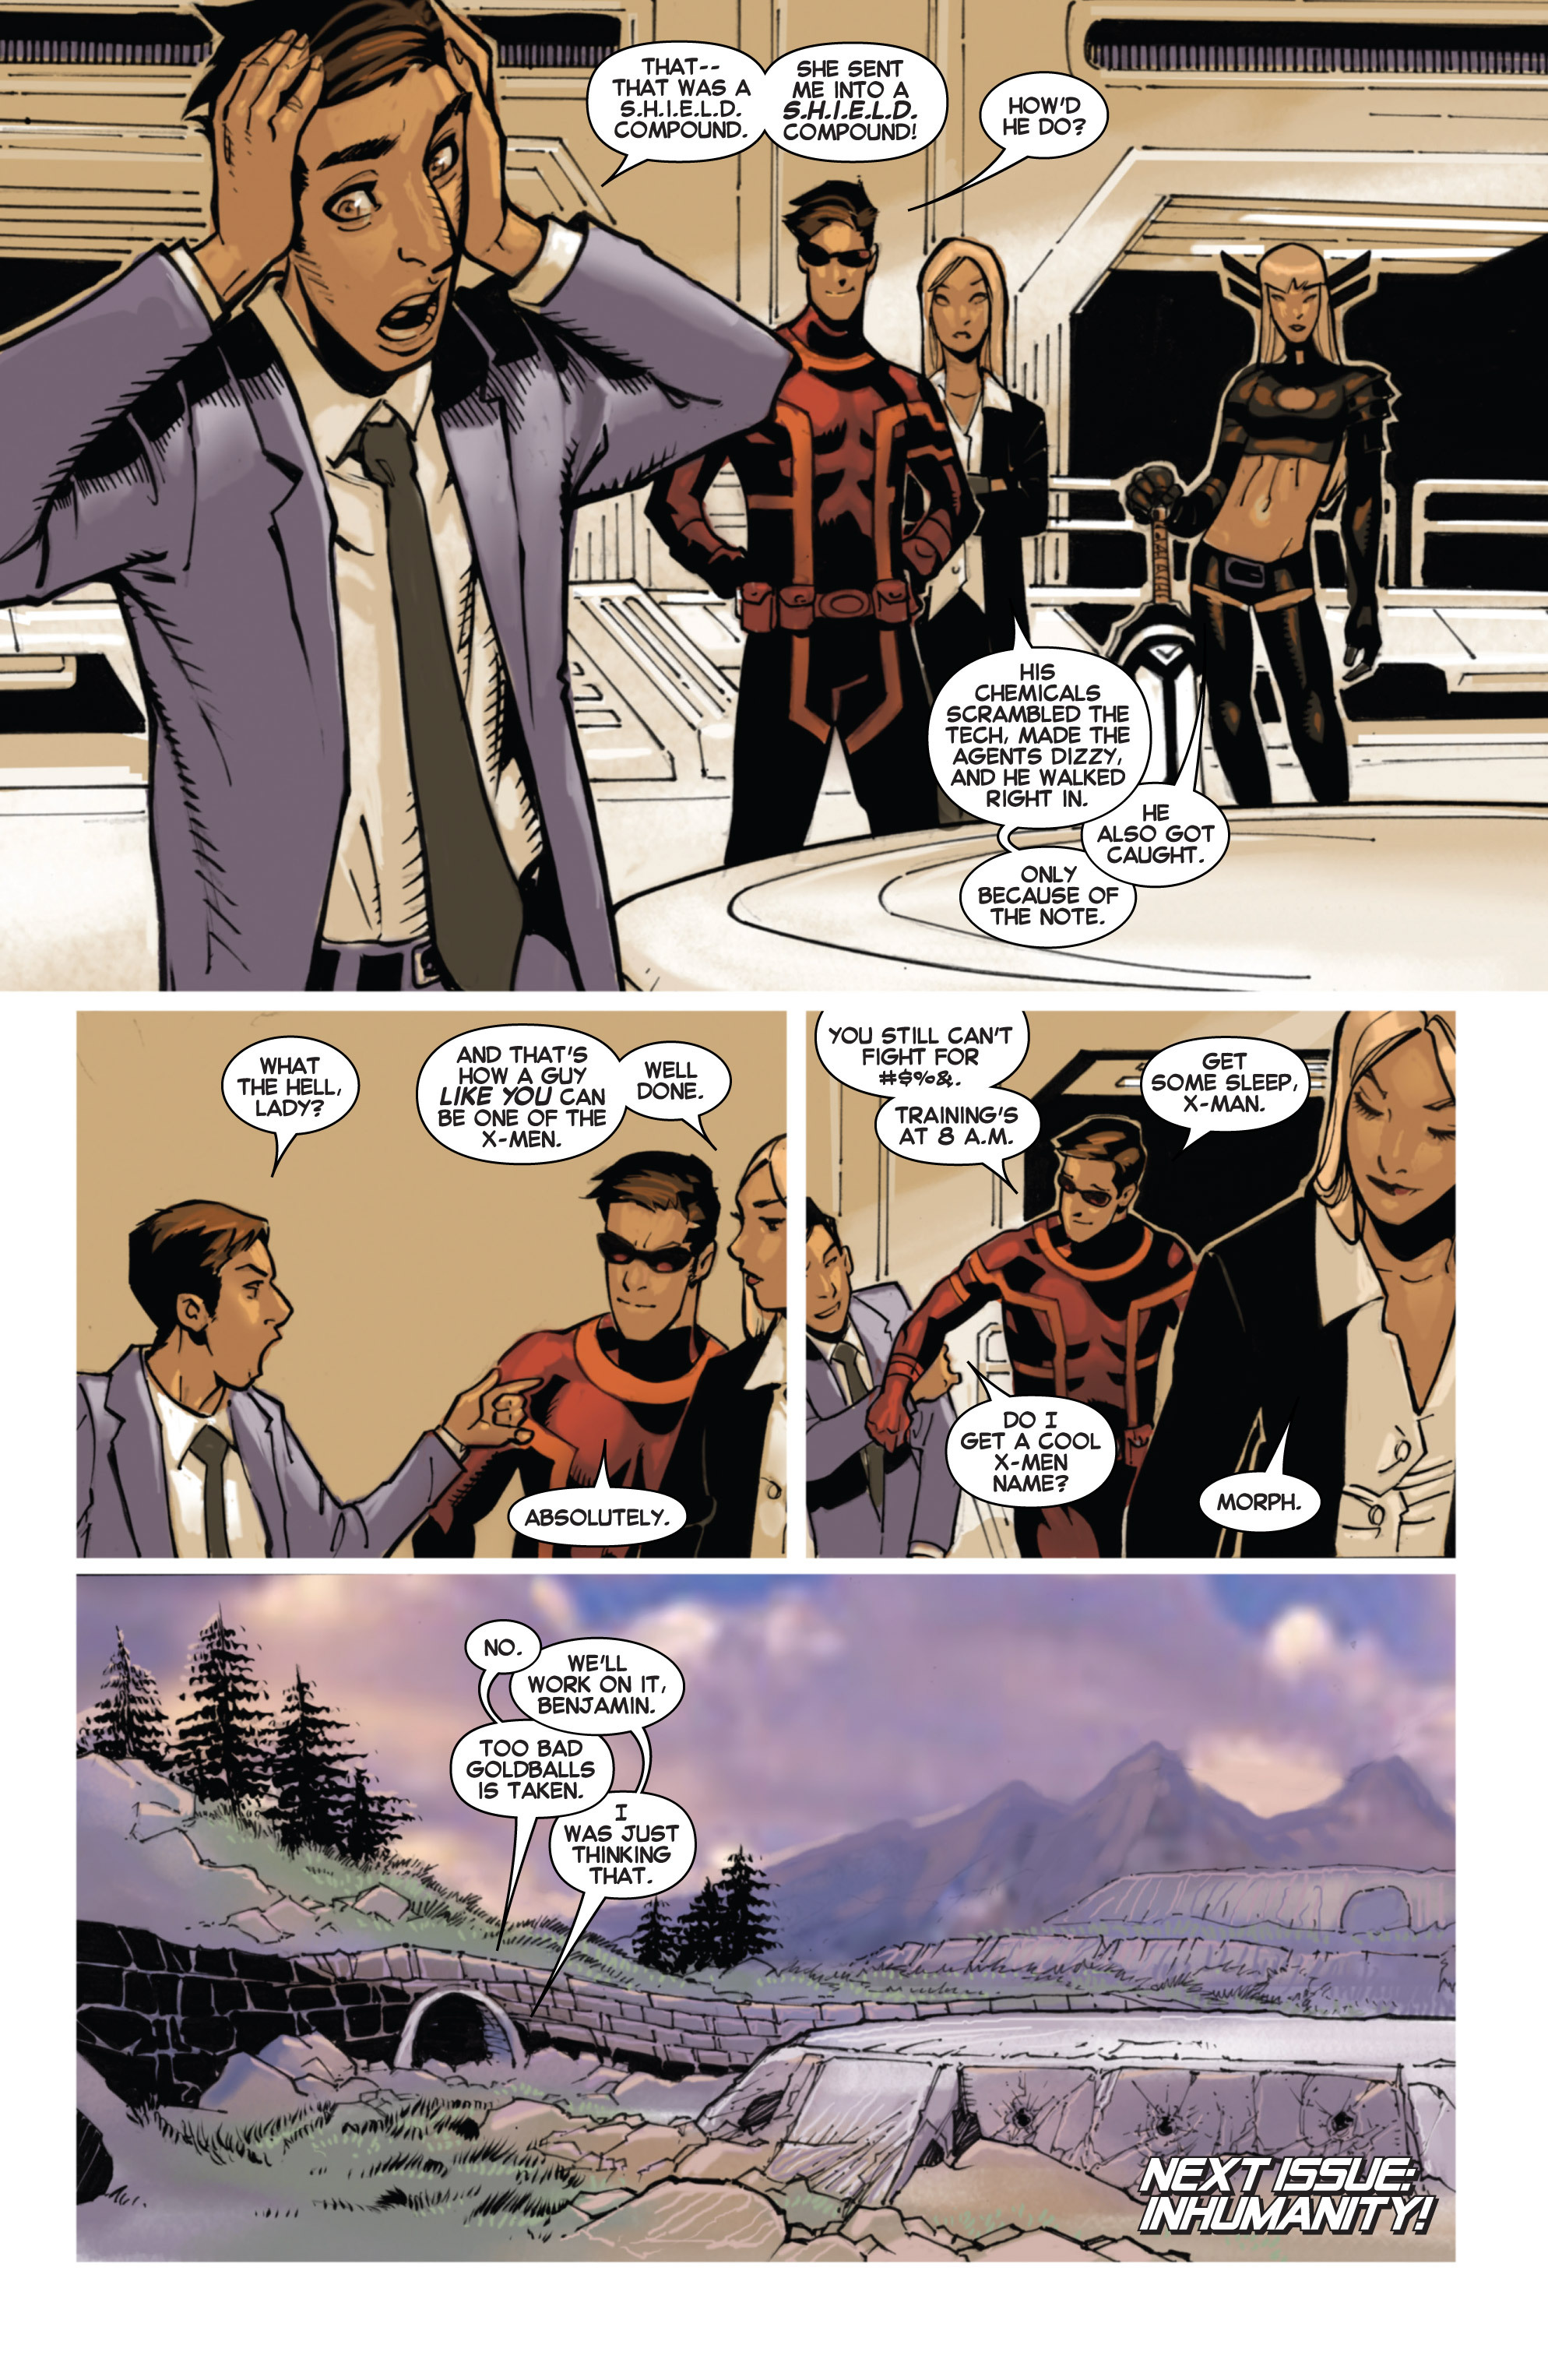 Read online Uncanny X-Men (2013) comic -  Issue # _TPB 3 - The Good, The Bad, The Inhuman - 23